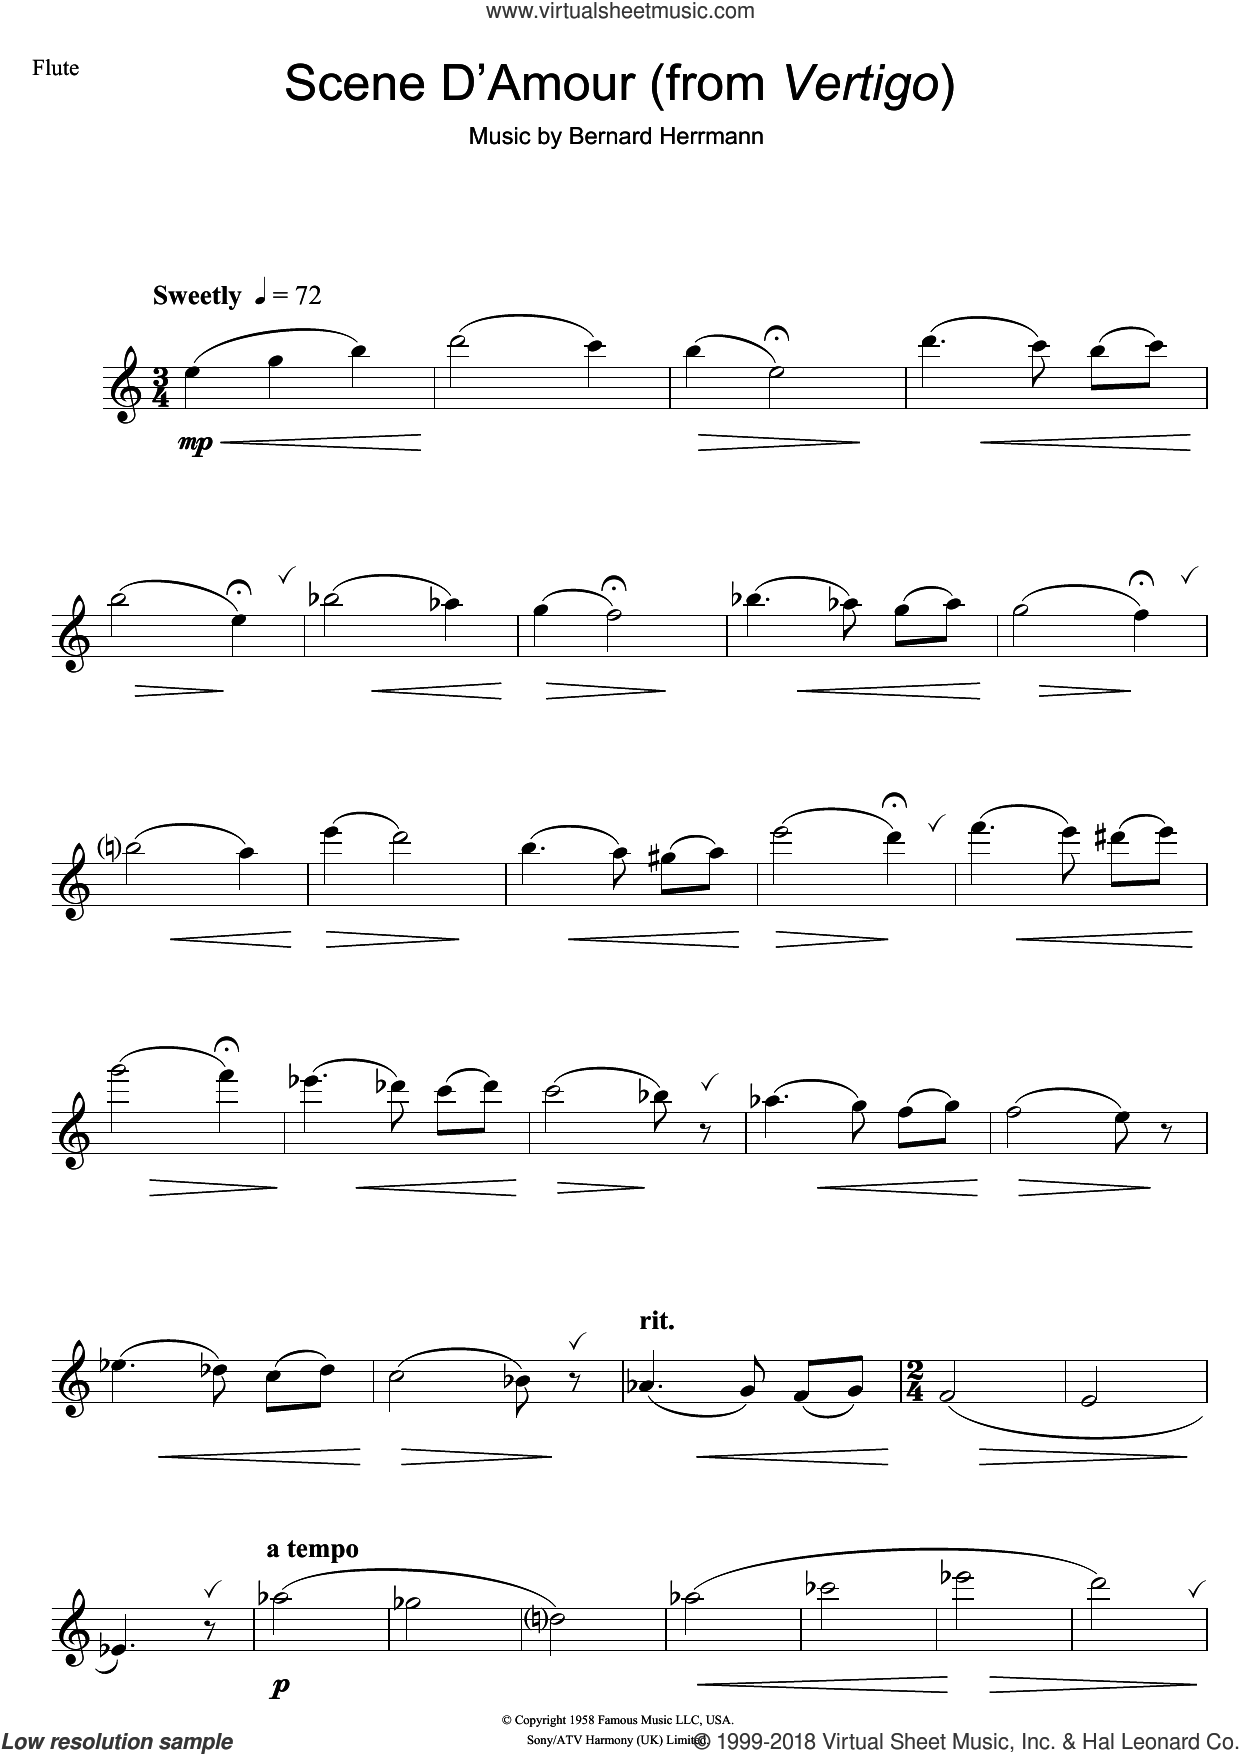 Scene D'Amour (from Vertigo) sheet music for flute solo by Bernard Herrmann, intermediate skill level